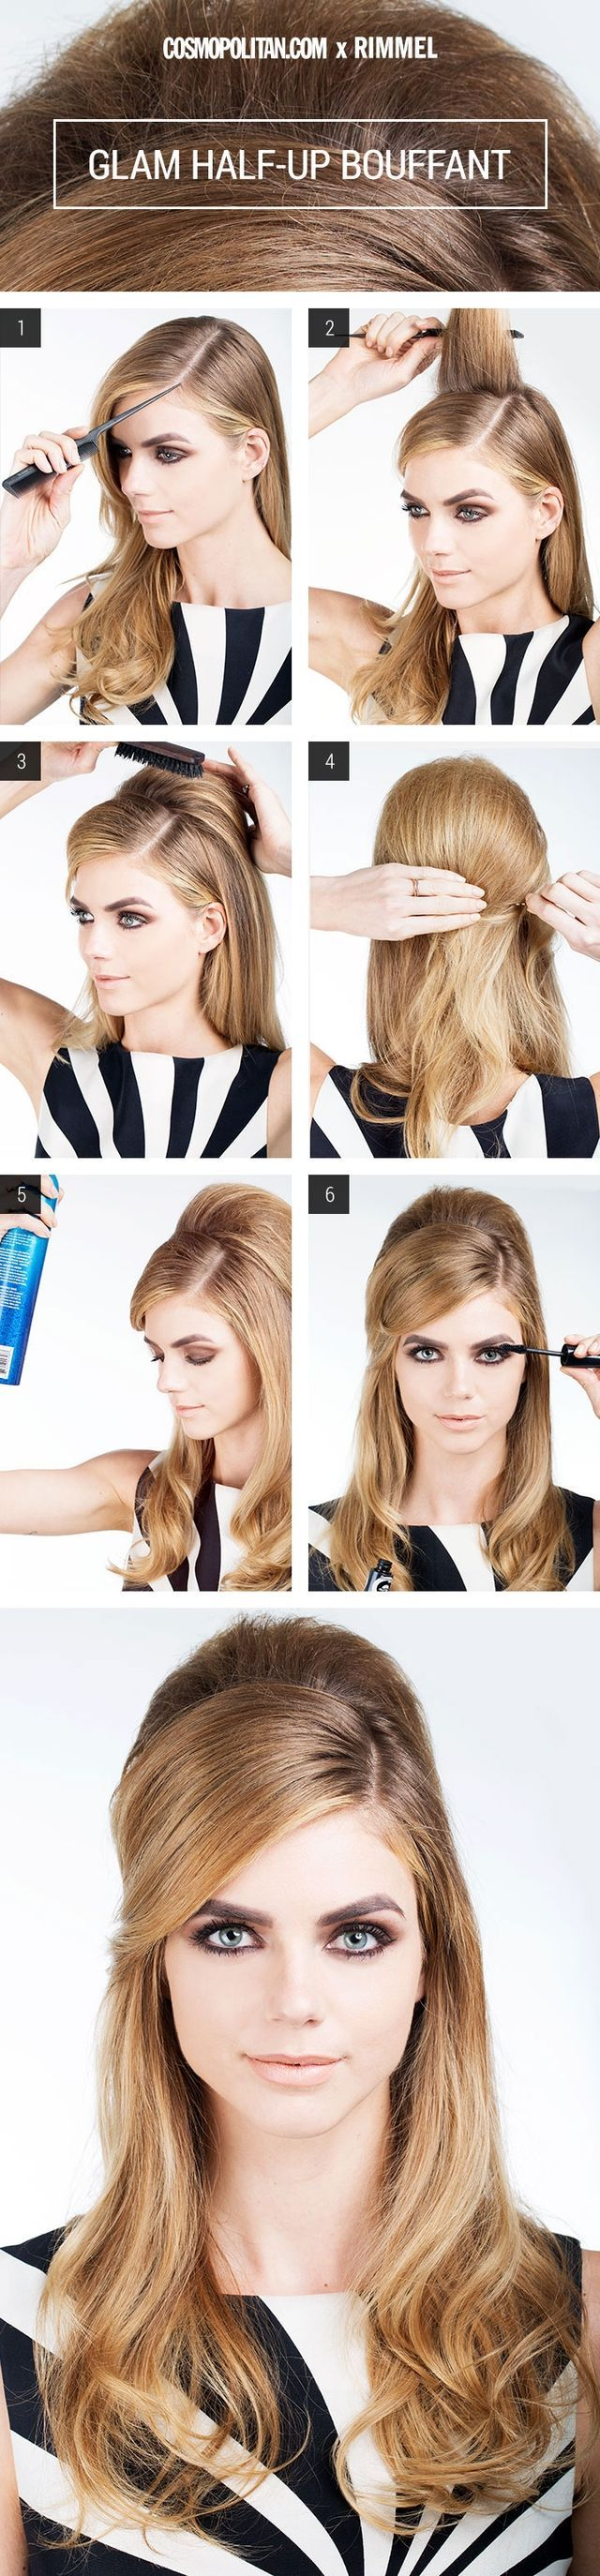 How To Bouffant Hairstyle – Brigitte Bardot Hairstyle How To